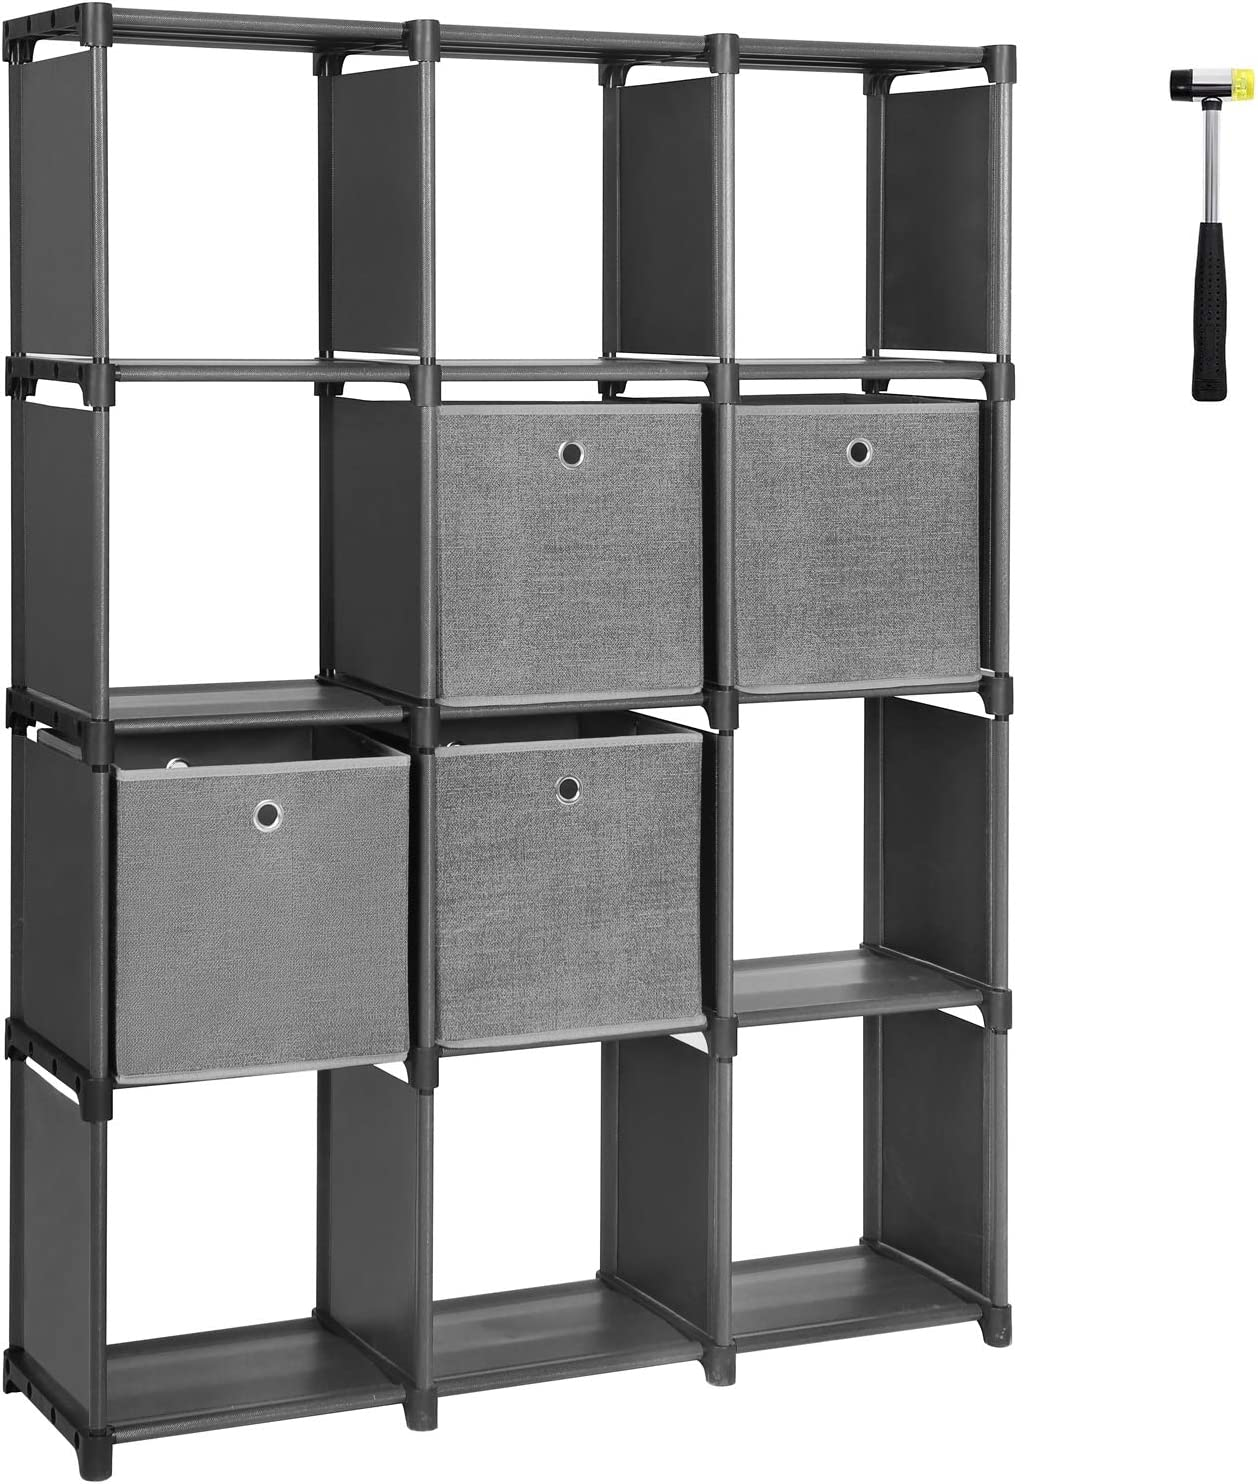 SONGMICS DIY Cube Storage Unit with Storage Boxes, 12 Cubes Multifunctional Book Shelves and Shoe Rack, Modular Sturdy Metal Frame, Includes Rubber Mallet, 55.1 x 11.8 x 41.3 Inches, Black